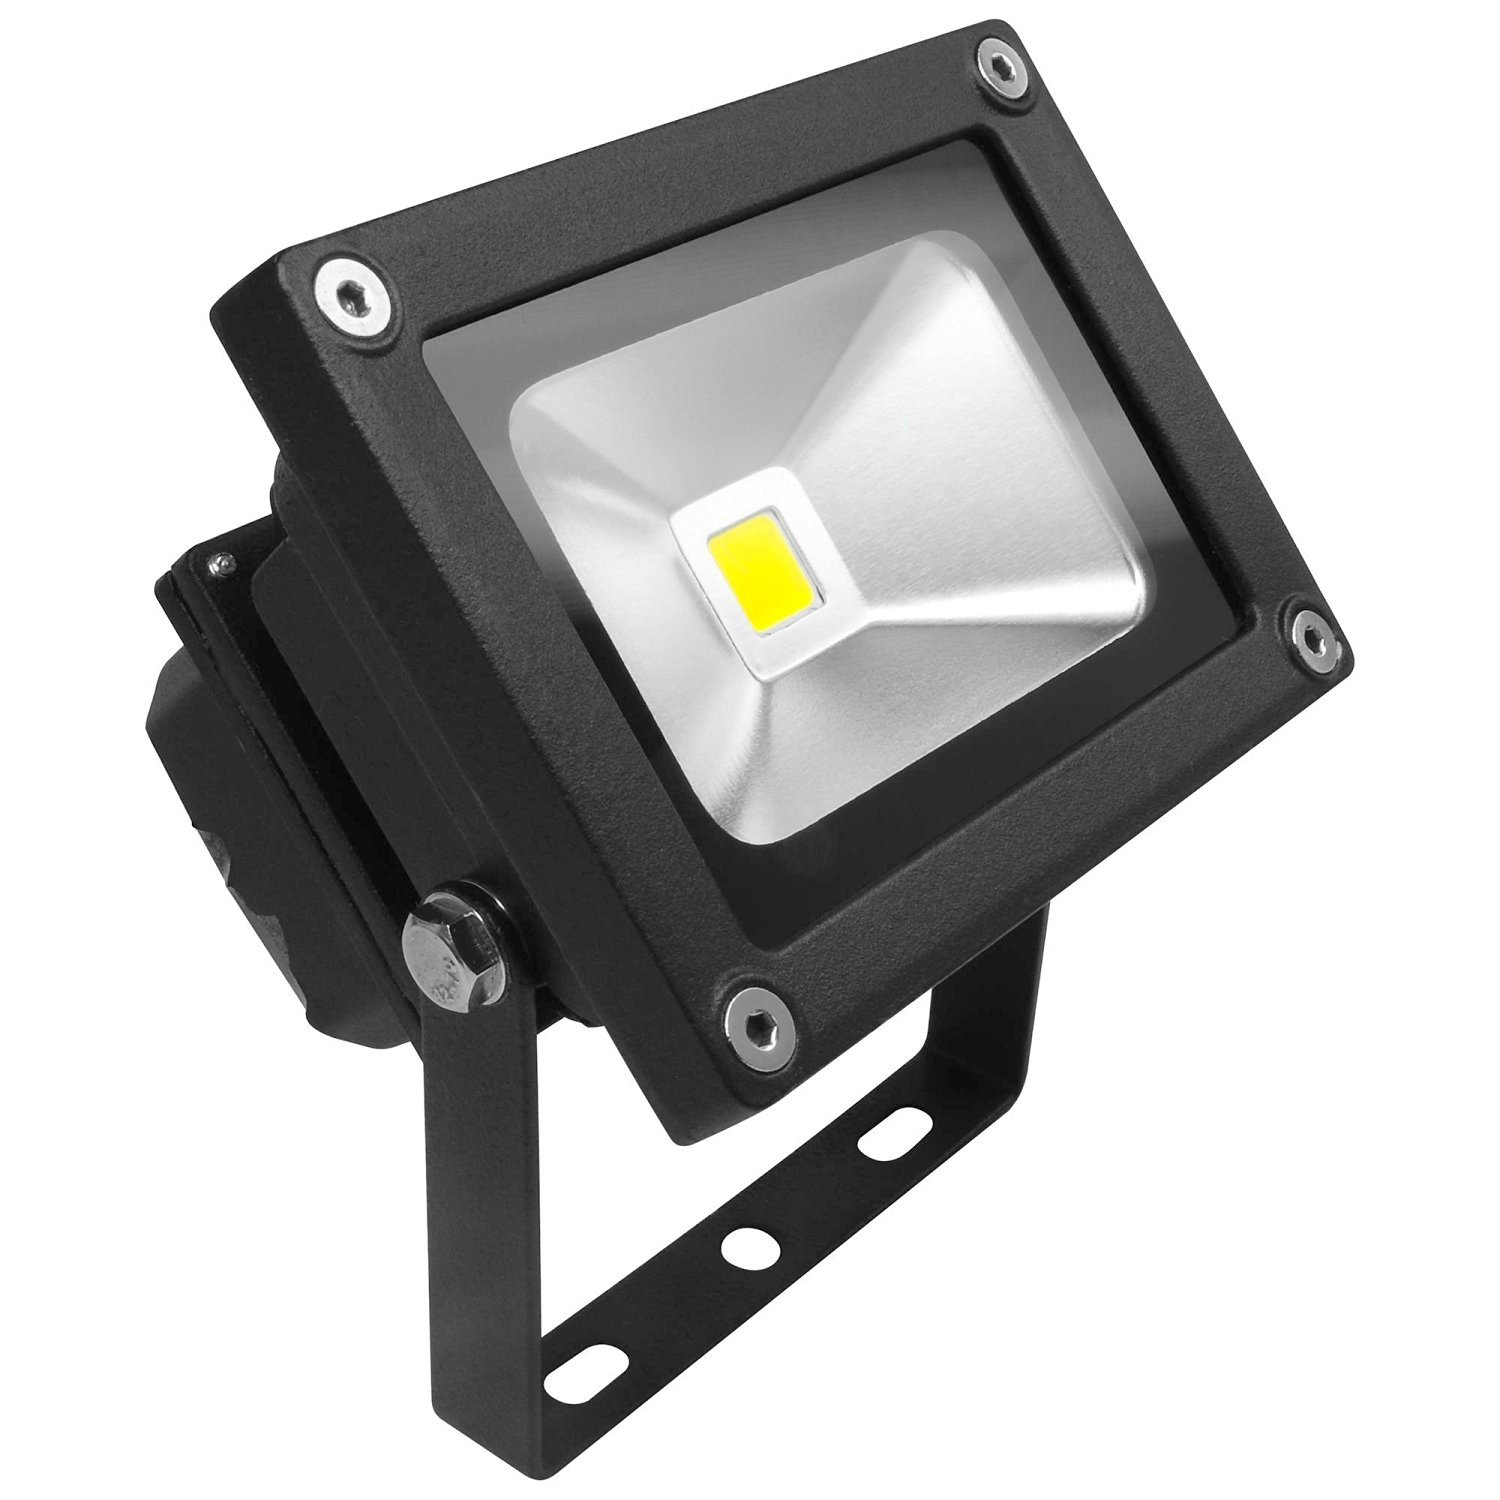 Long life lamp company smd 10 watt outdoor led flood light led long life lamp company smd 10 watt outdoor led flood light led ideal replacement for halogen r7s floodlight and security lights garden floodlight mozeypictures Images